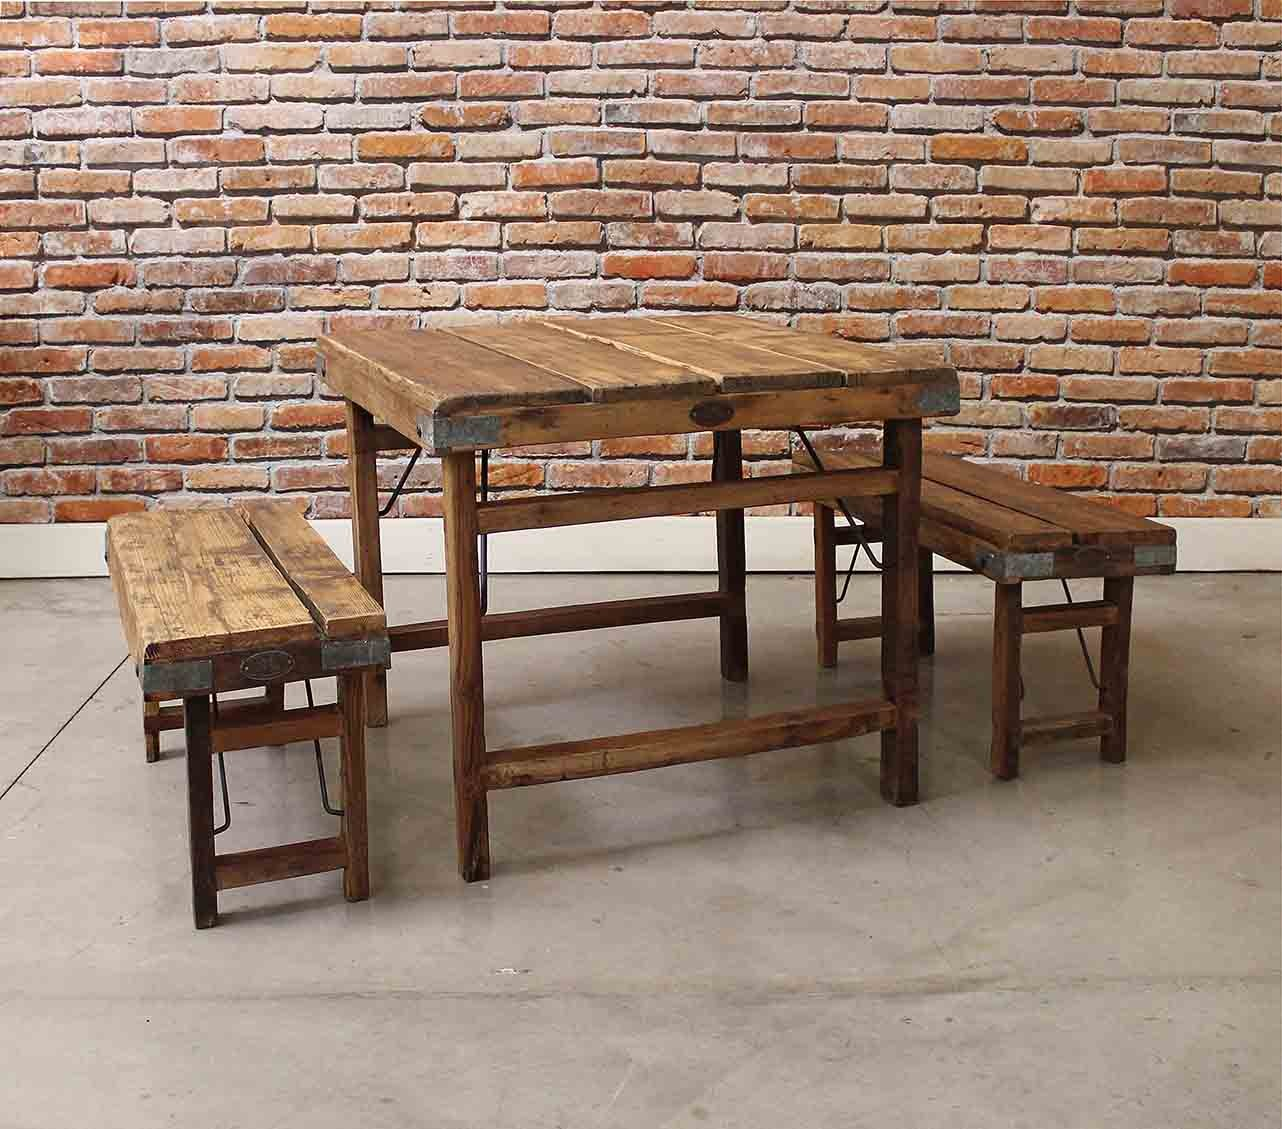 Home Farmhouse Small Wood Planks Dining Table With Benches